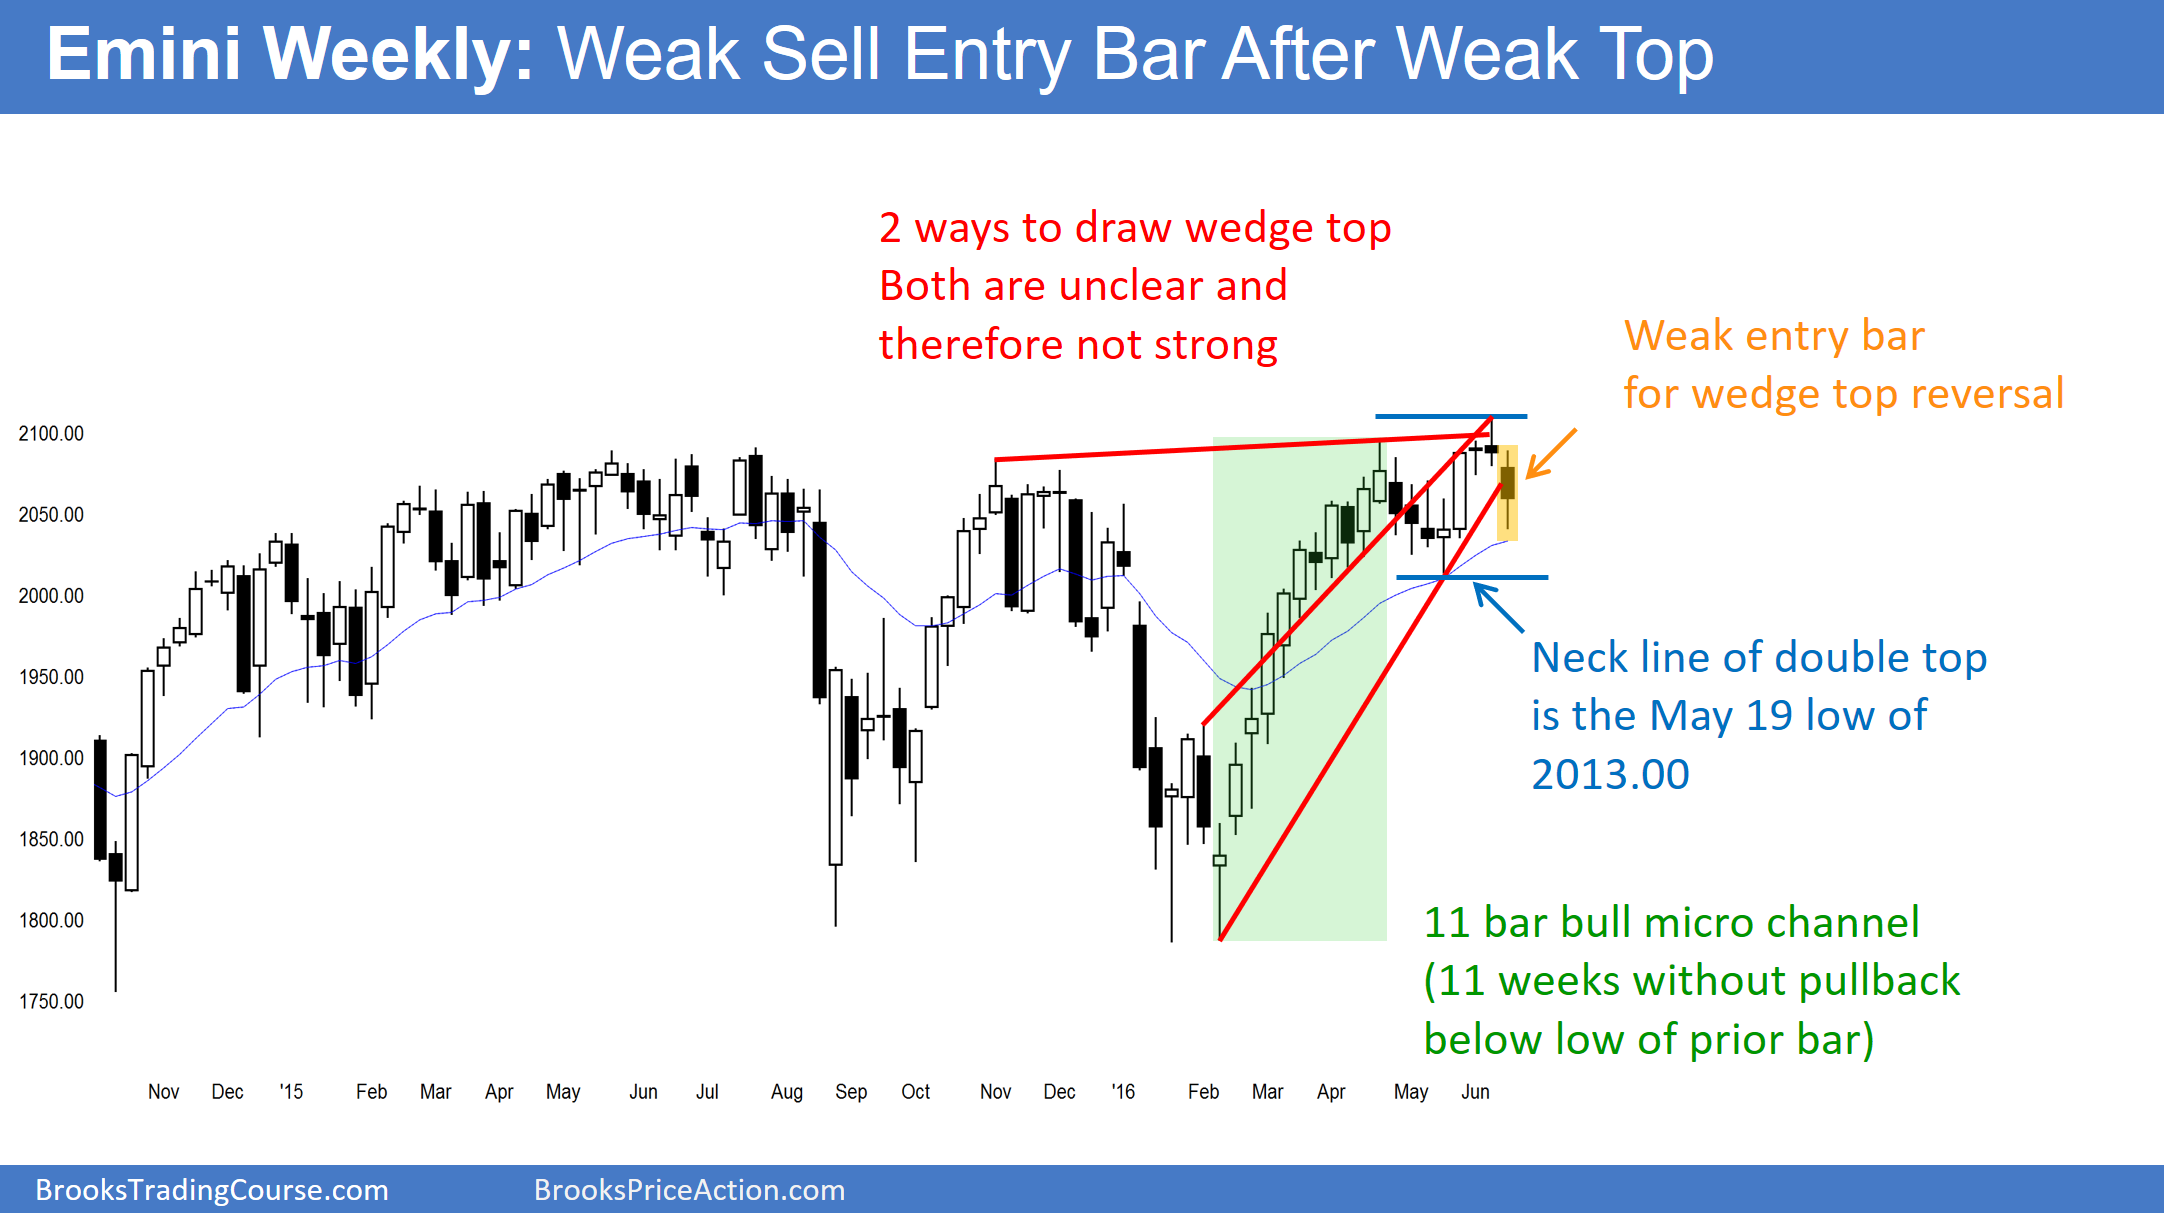 The bar on this week's weekly S&P500 Emini futures candlestick chart closed in the middle of its range. It also closed in the middle of the 3 month trading range. It is neutral.